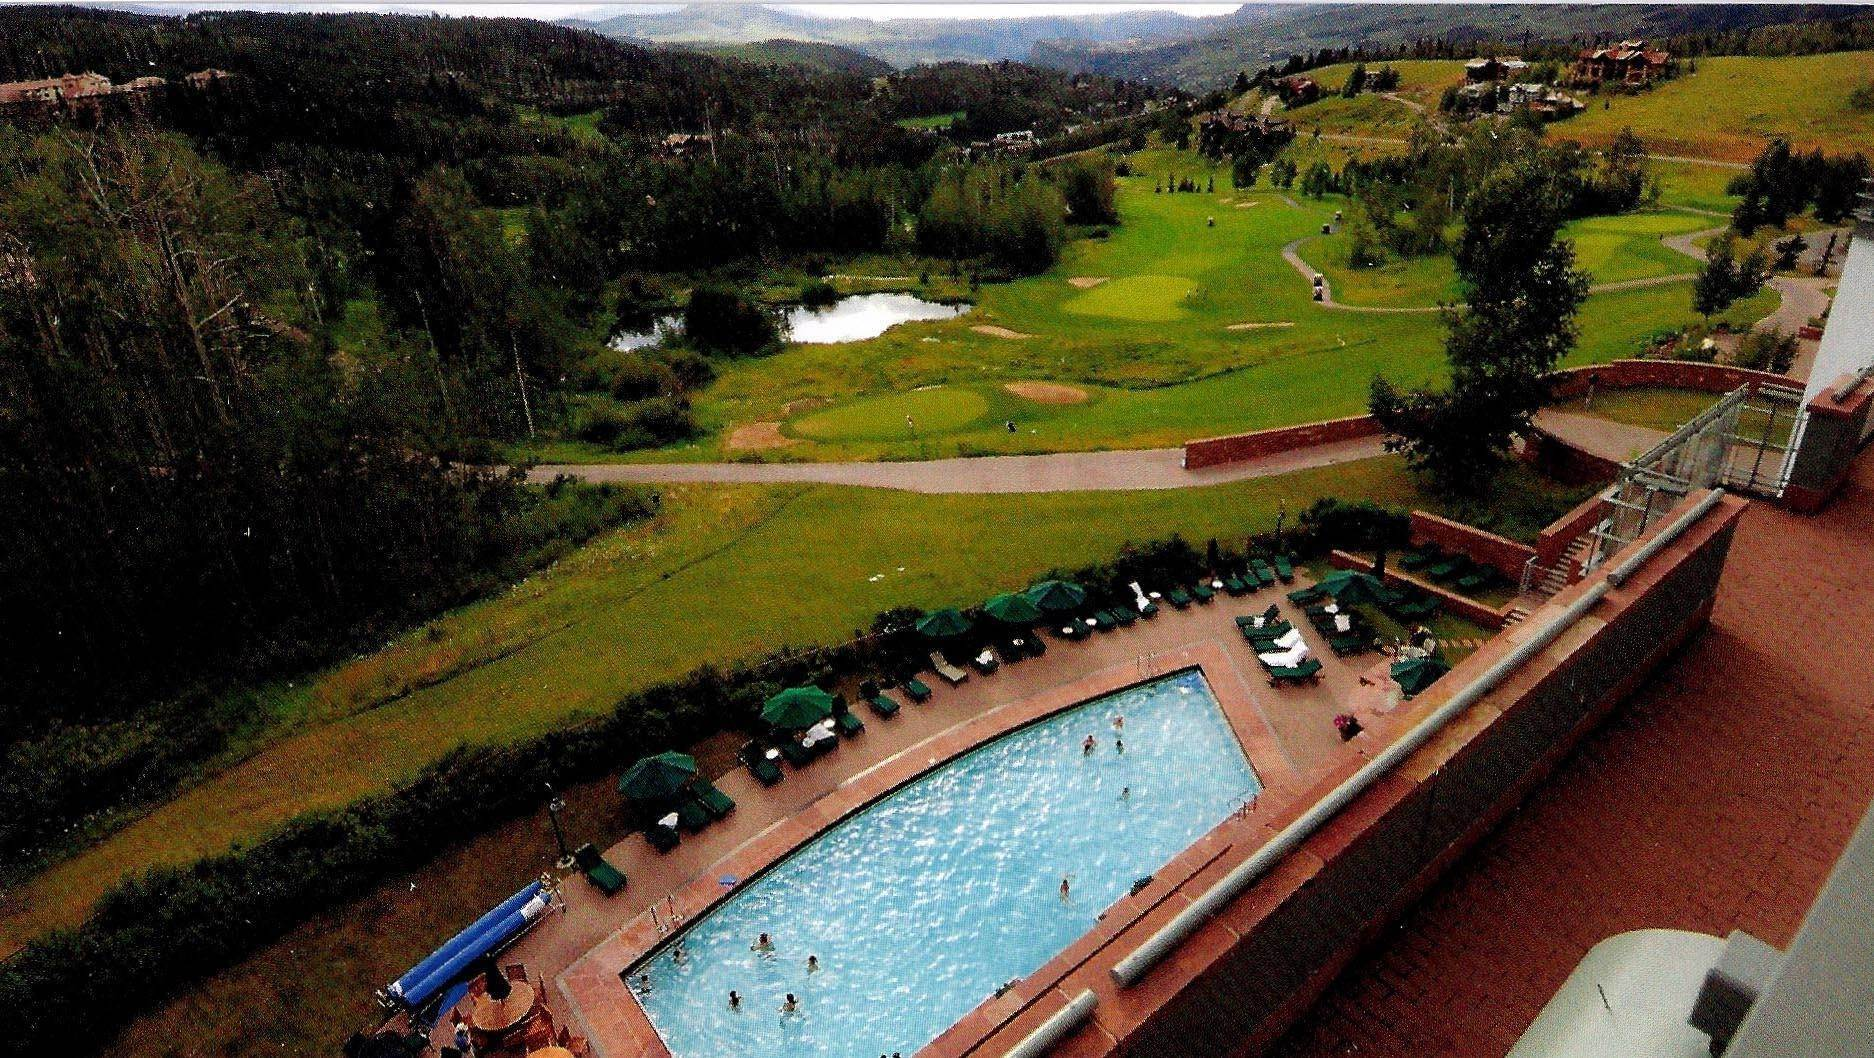 14. Condominium para Venda às 136 Country Club Drive Mountain Village, Colorado,81435 Estados Unidos